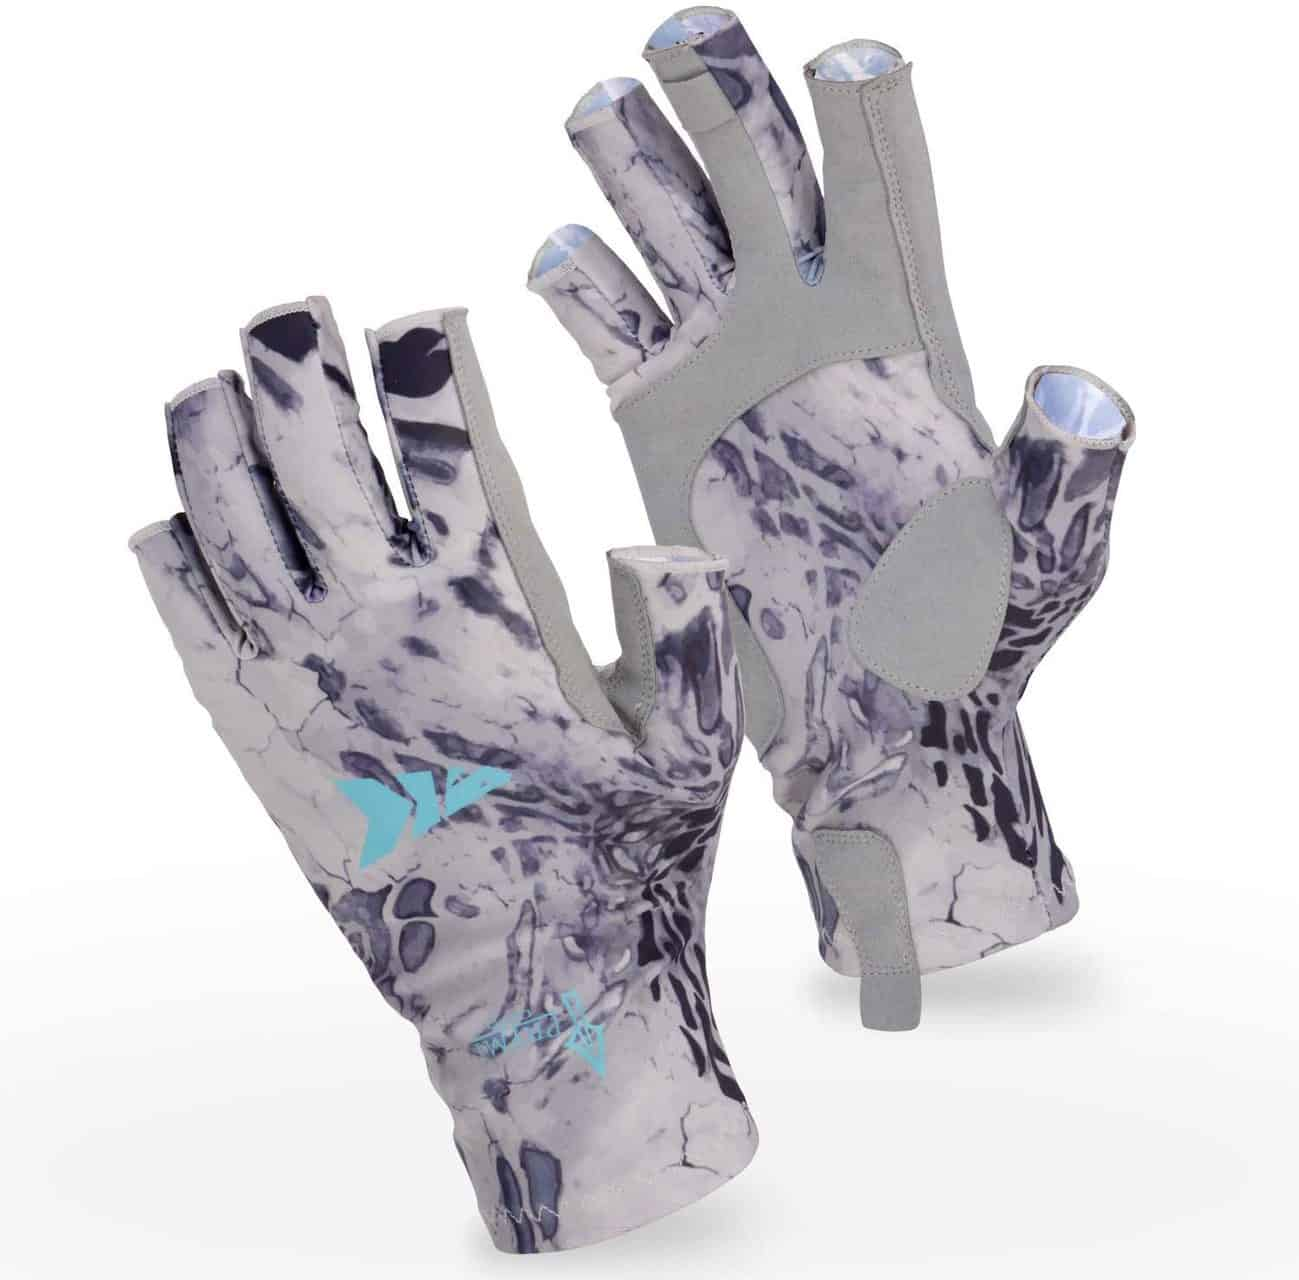 Fishing Gloves with UV Protection by KastKing